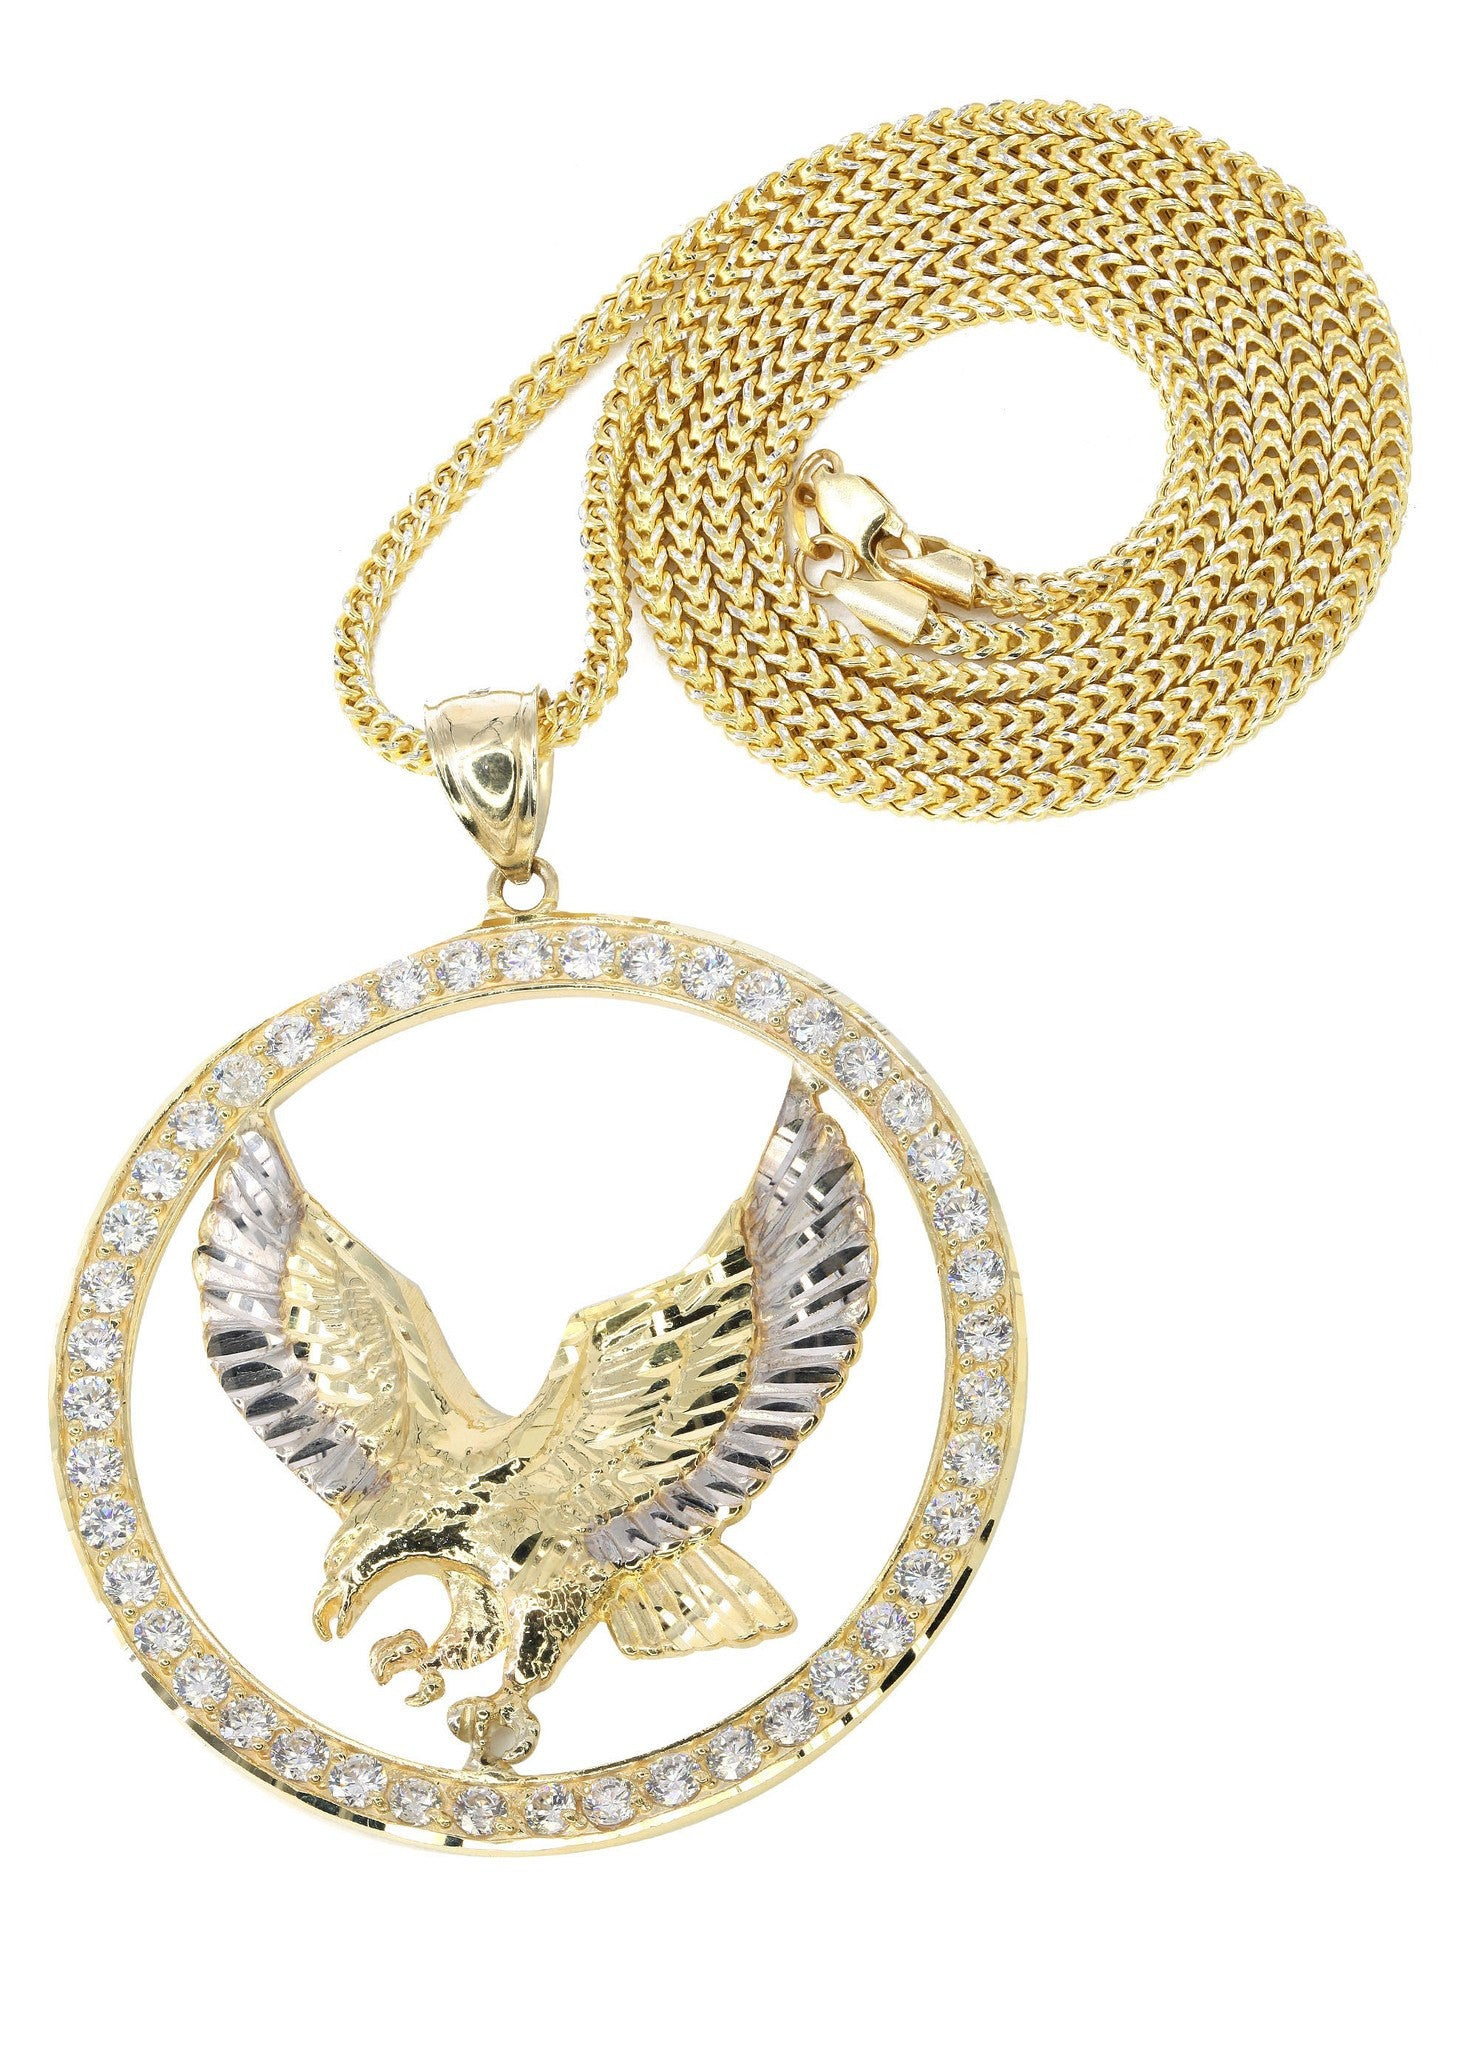 10K Yellow Gold Franco Chain & Cz Eagle Pendant / Appx. 19 Grams